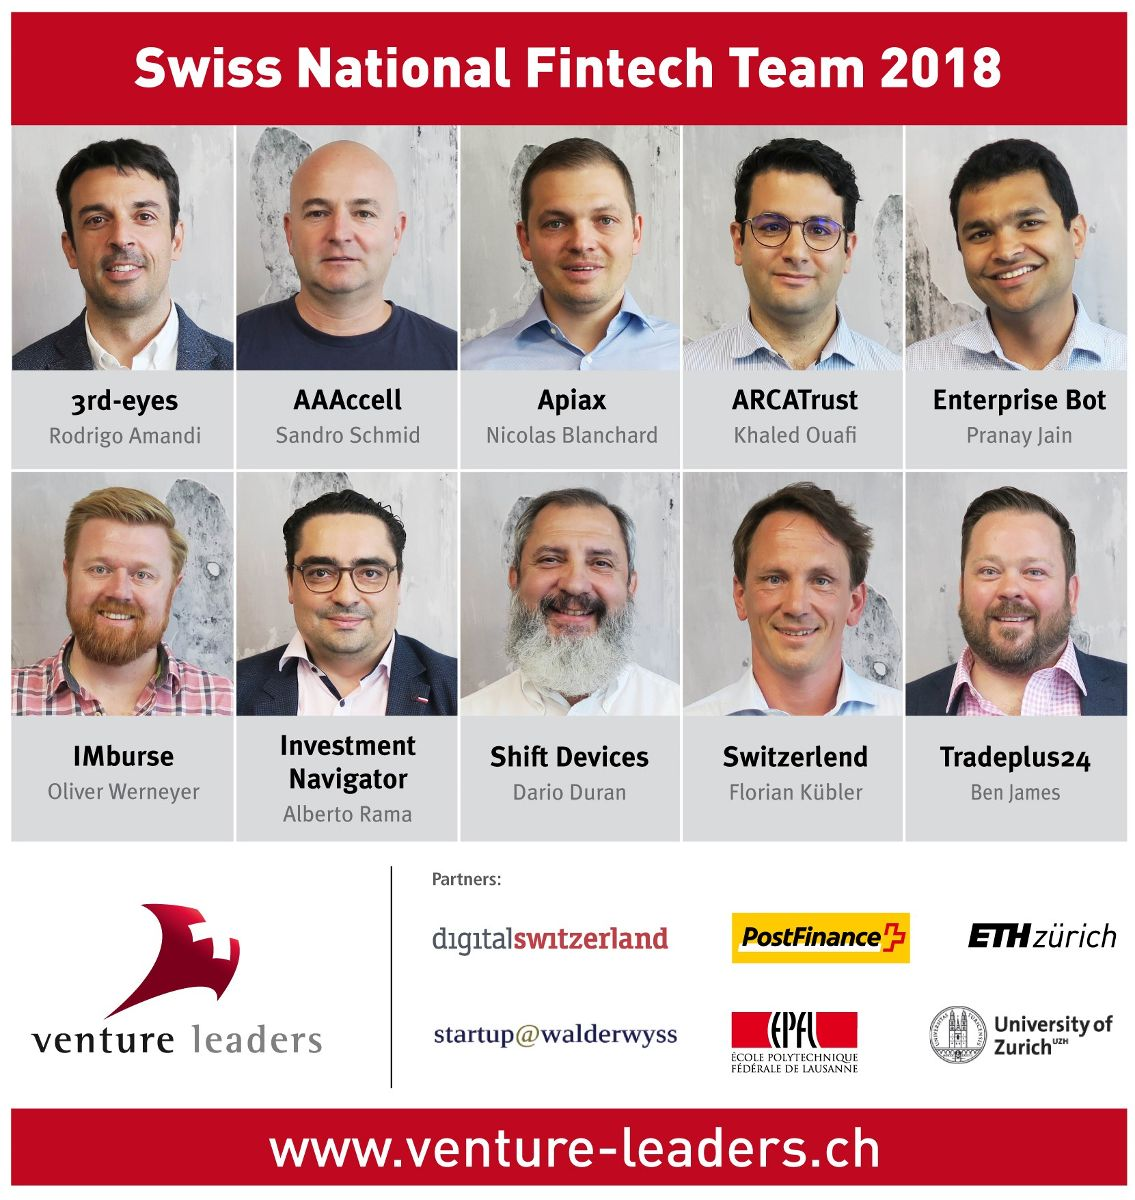 Swiss startups in New York - Fintech knowledge for the world market